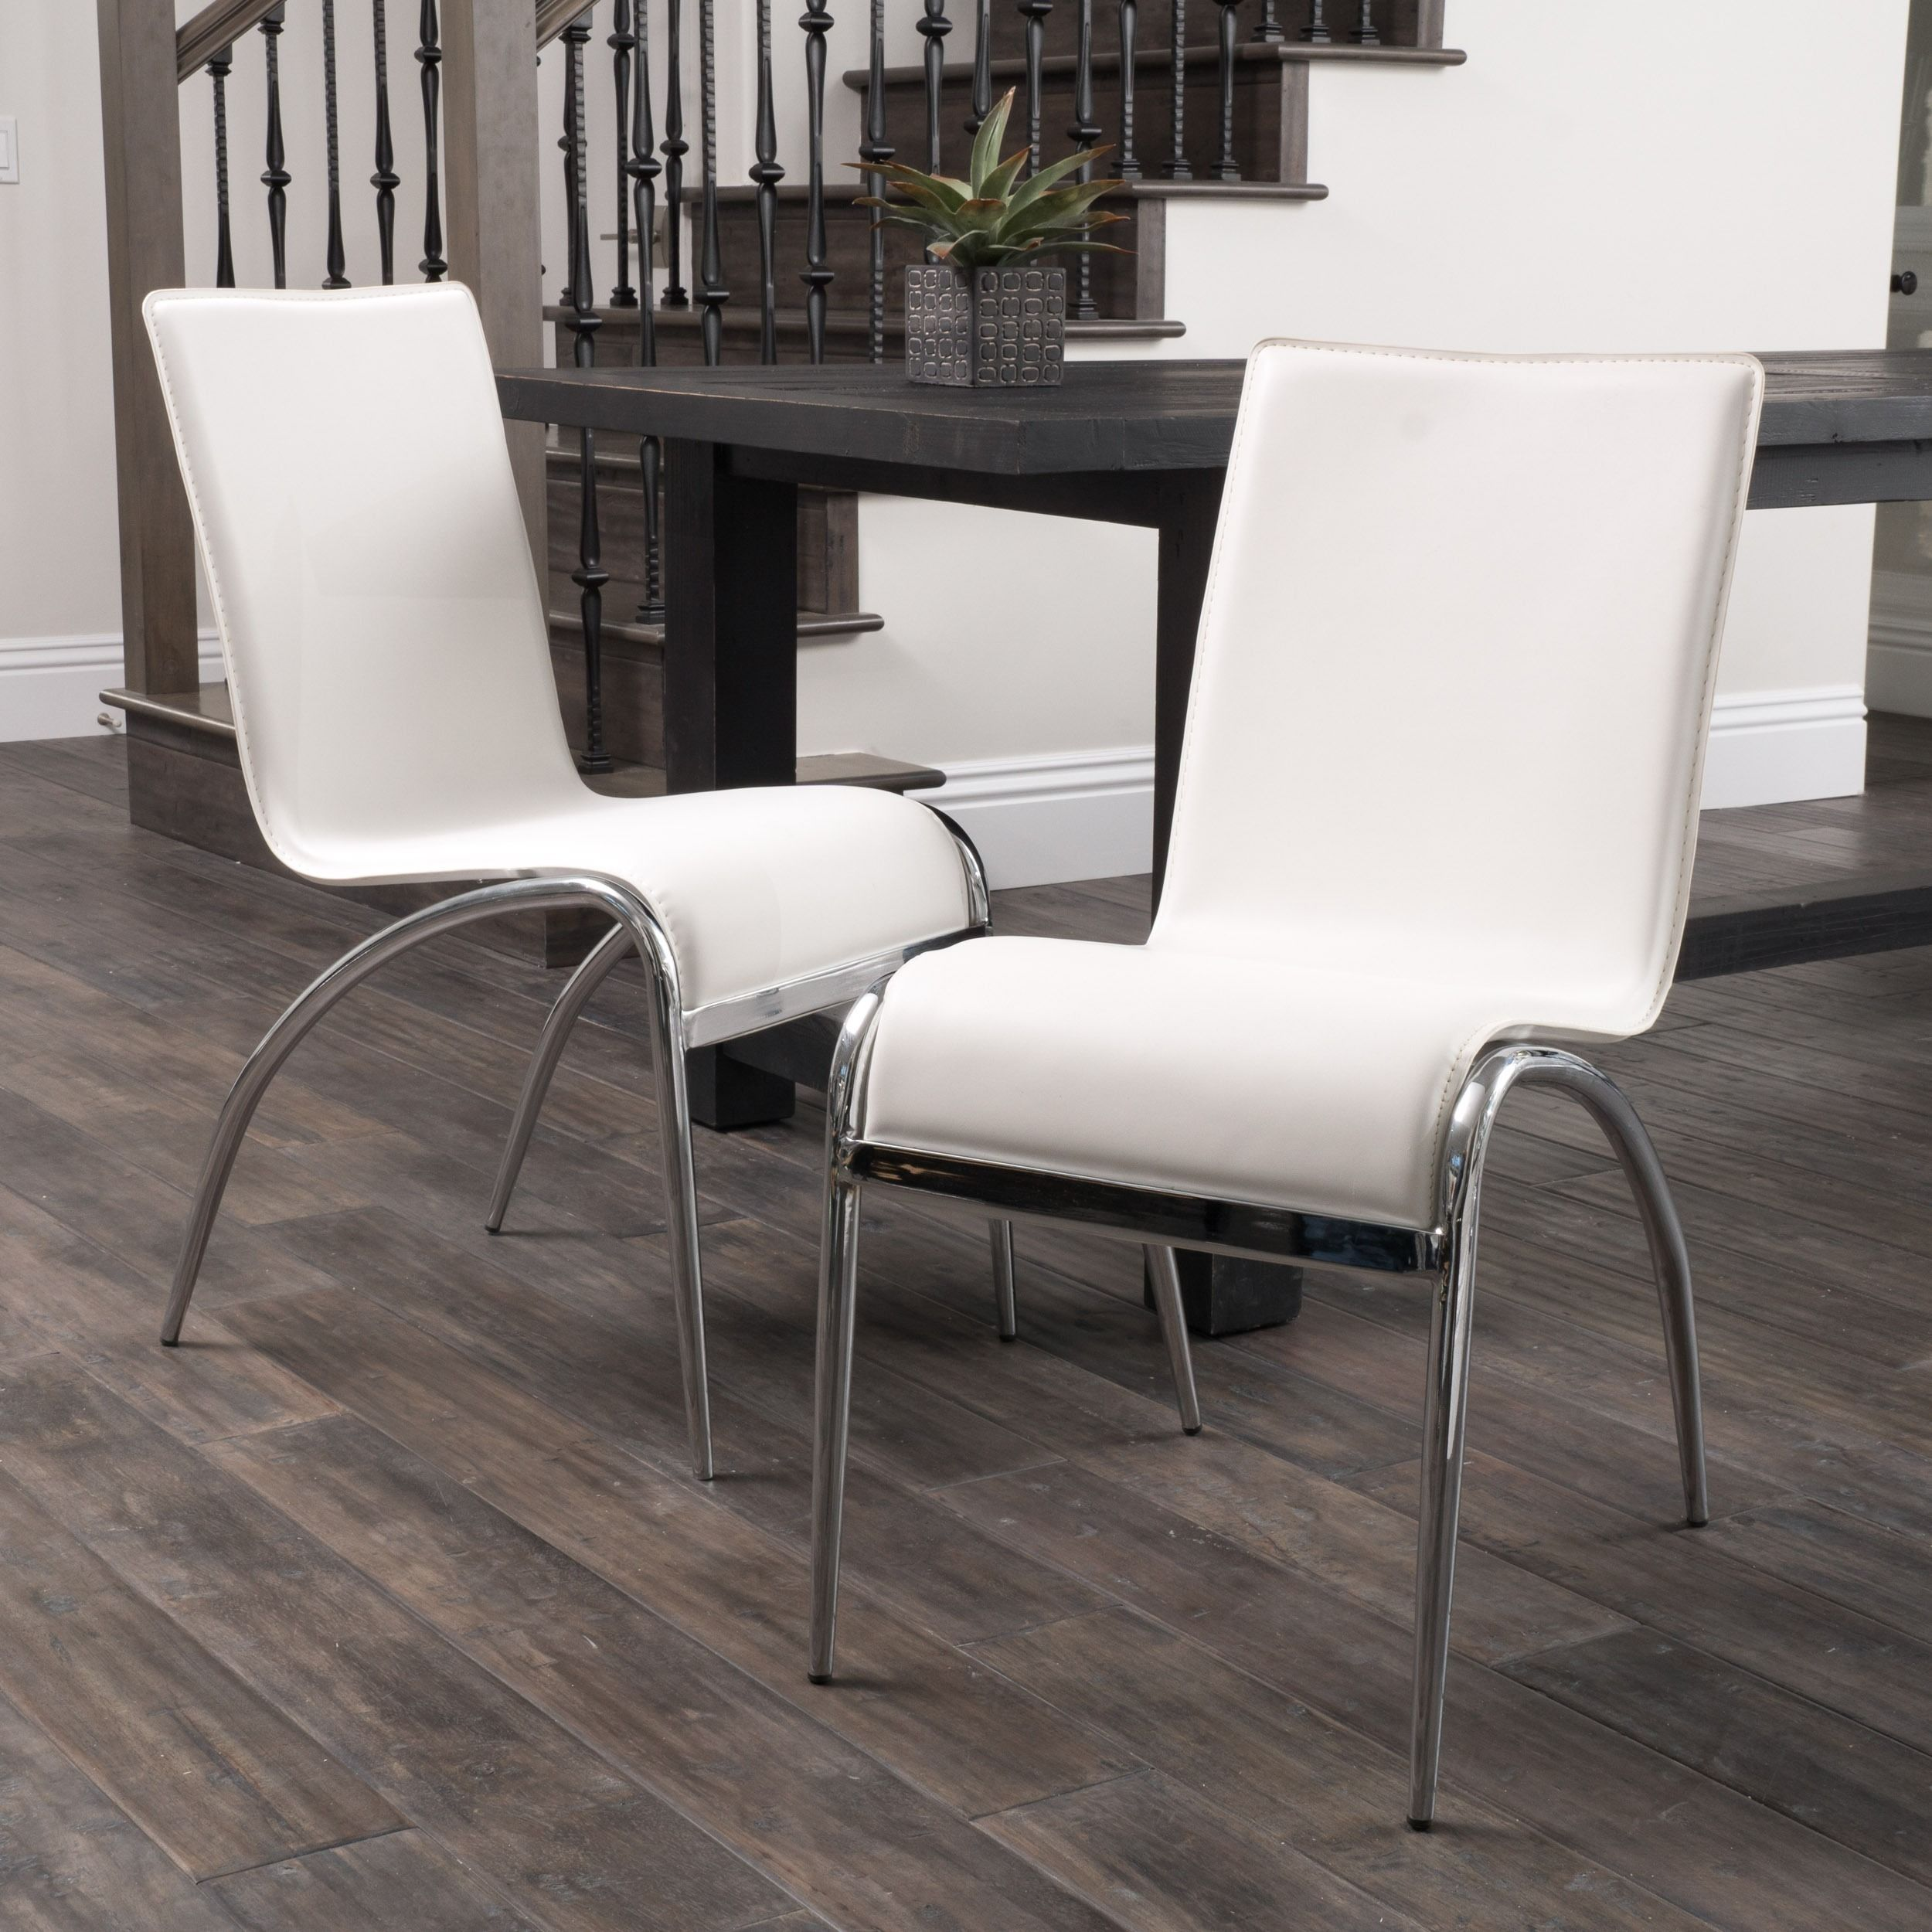 Modern White Dining Chair Set of 2 by Christopher Knight Home